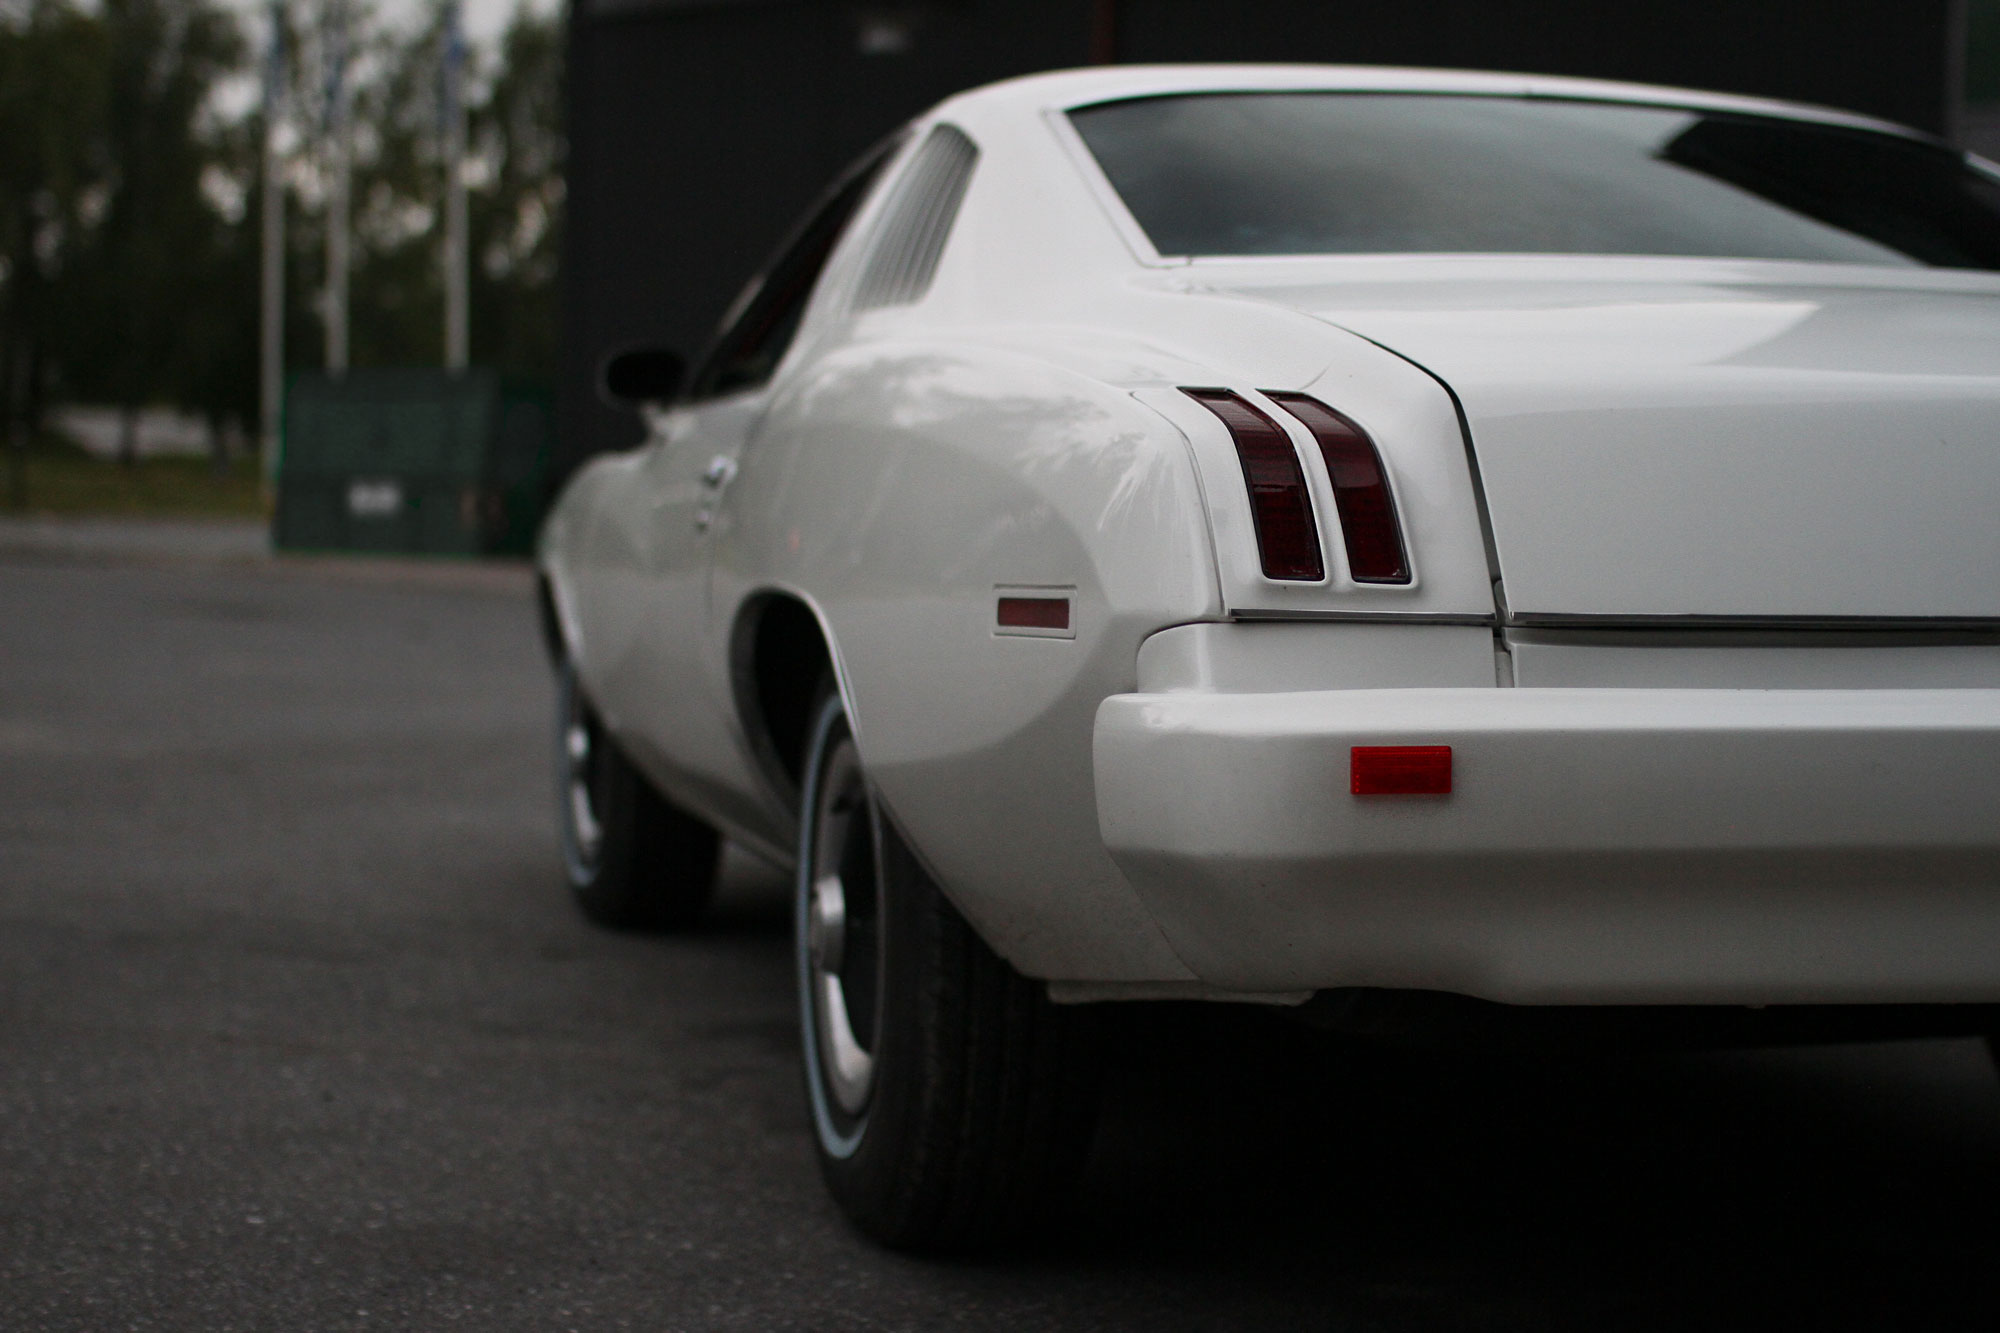 Rear of a Grand Am